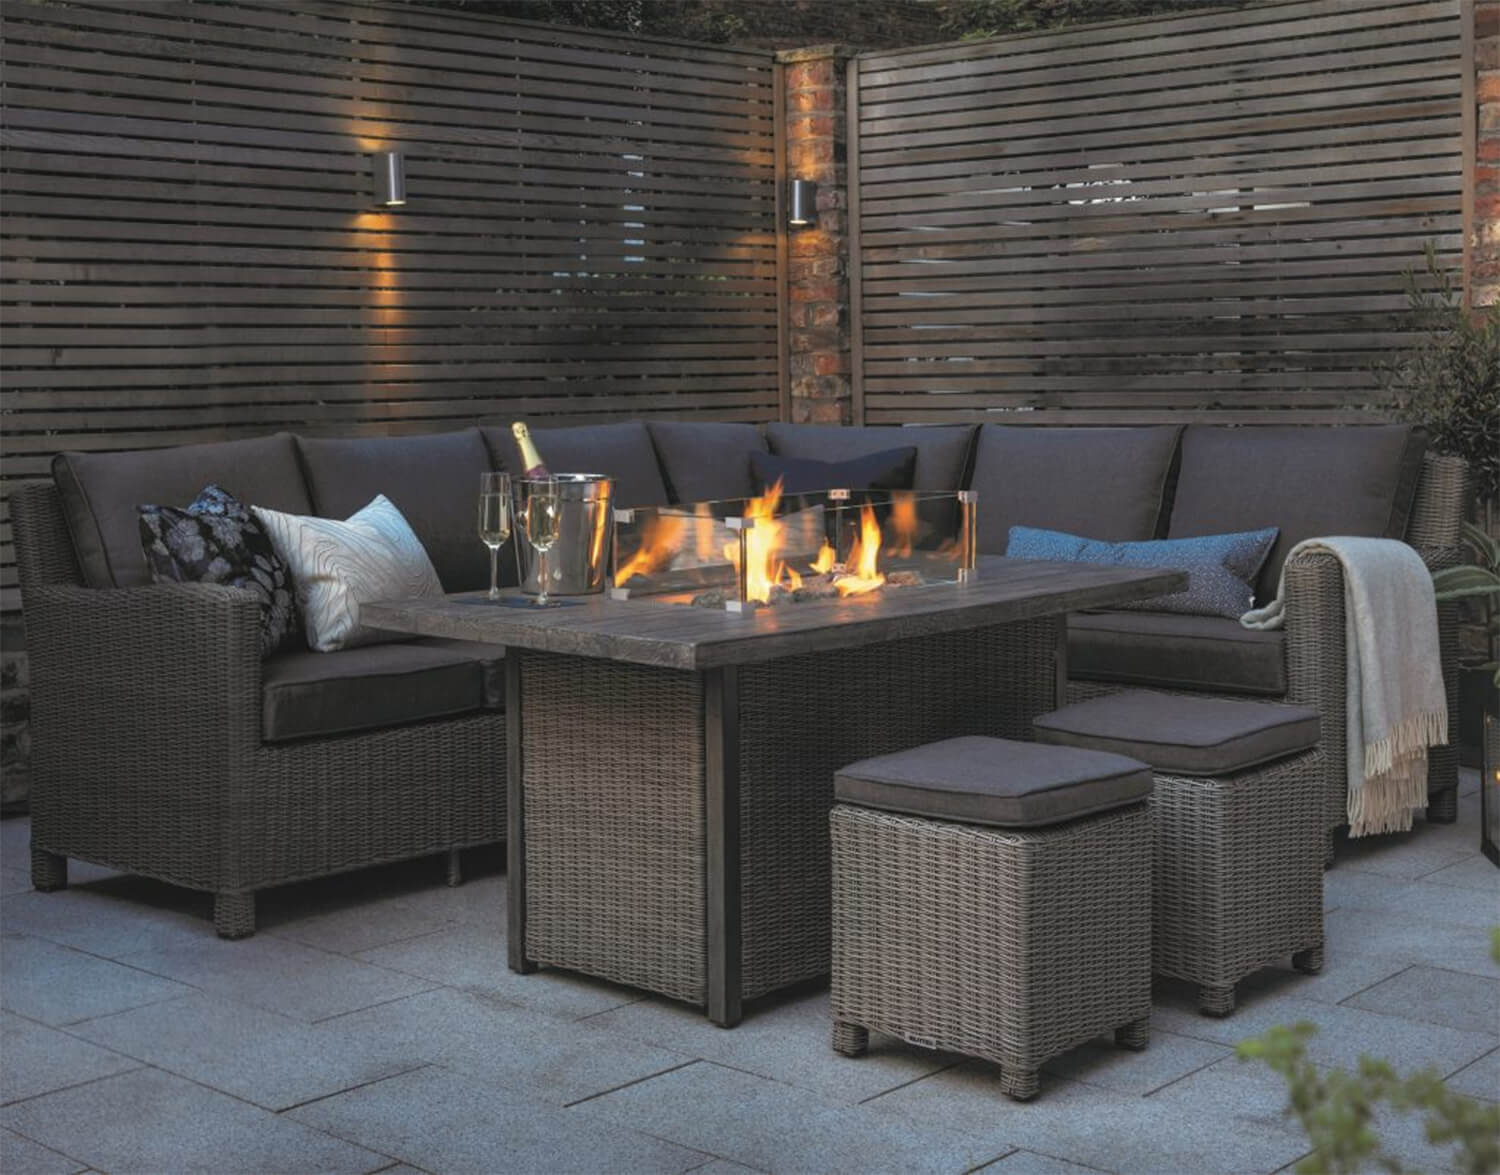 Picture of: Kettler Palma Left Hand Corner Sofa Set With Fire Pit Table Rattan 1969 Garden4less Uk Shop